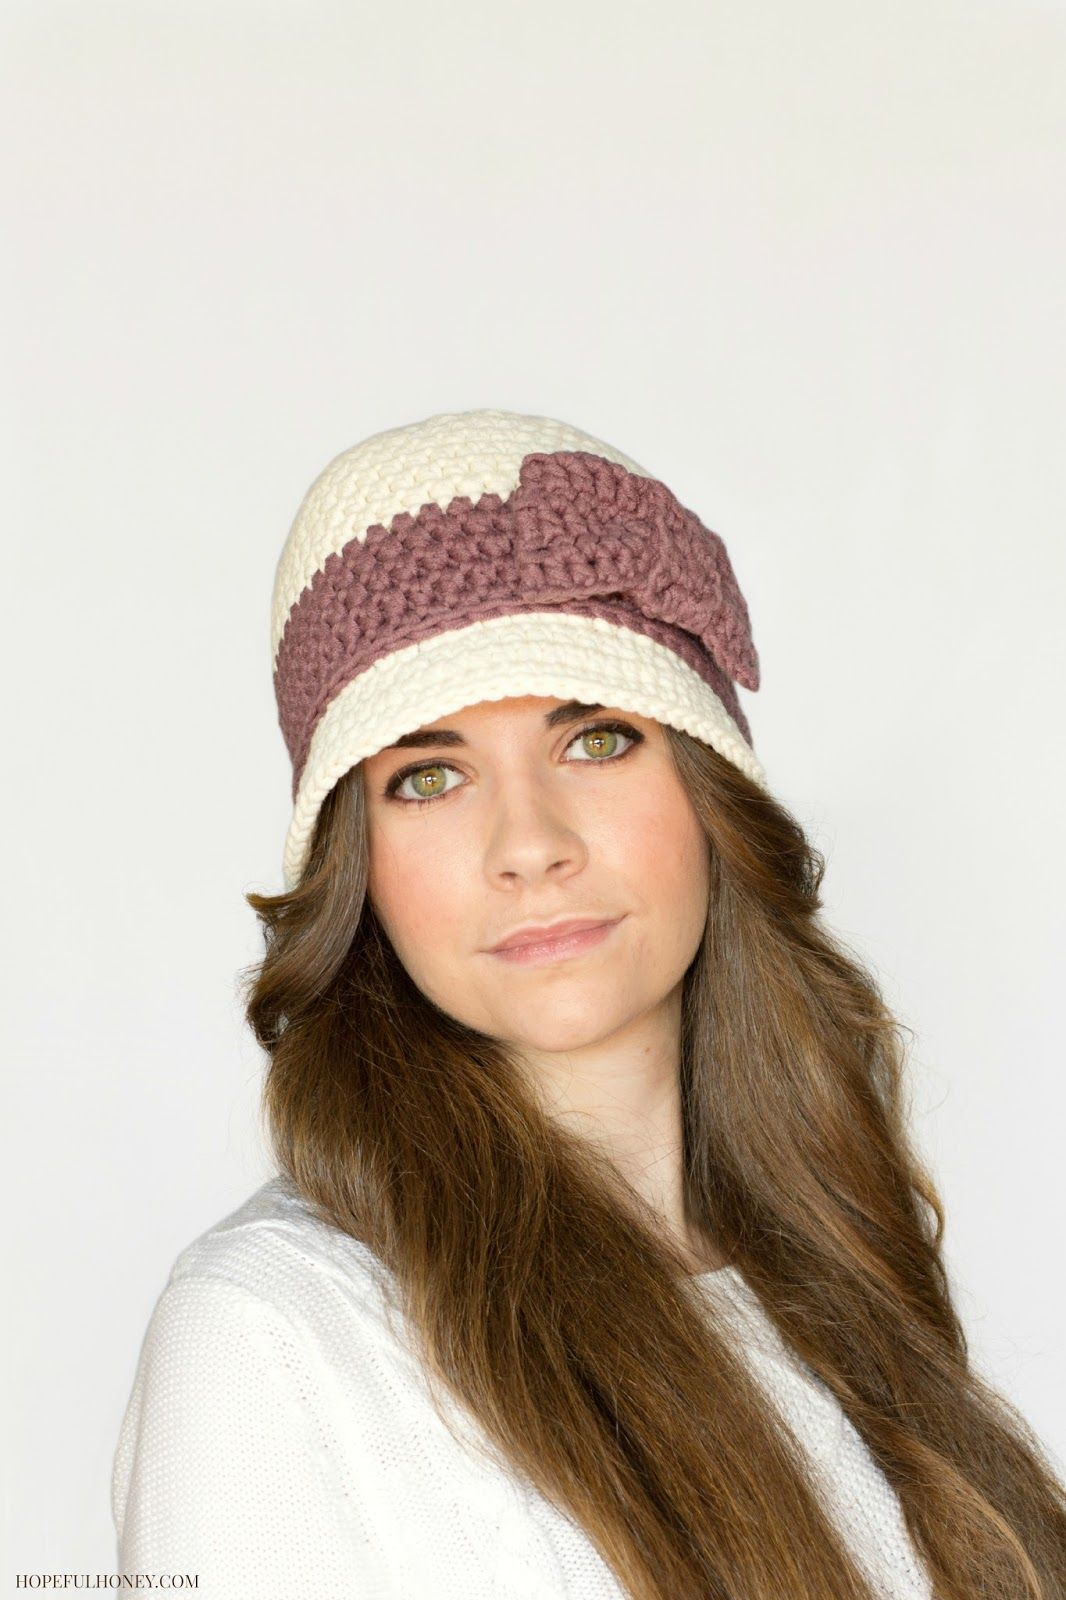 Downton Abbey Inspired Cloche Hat Crochet Pattern | Gorros, Tejido y ...